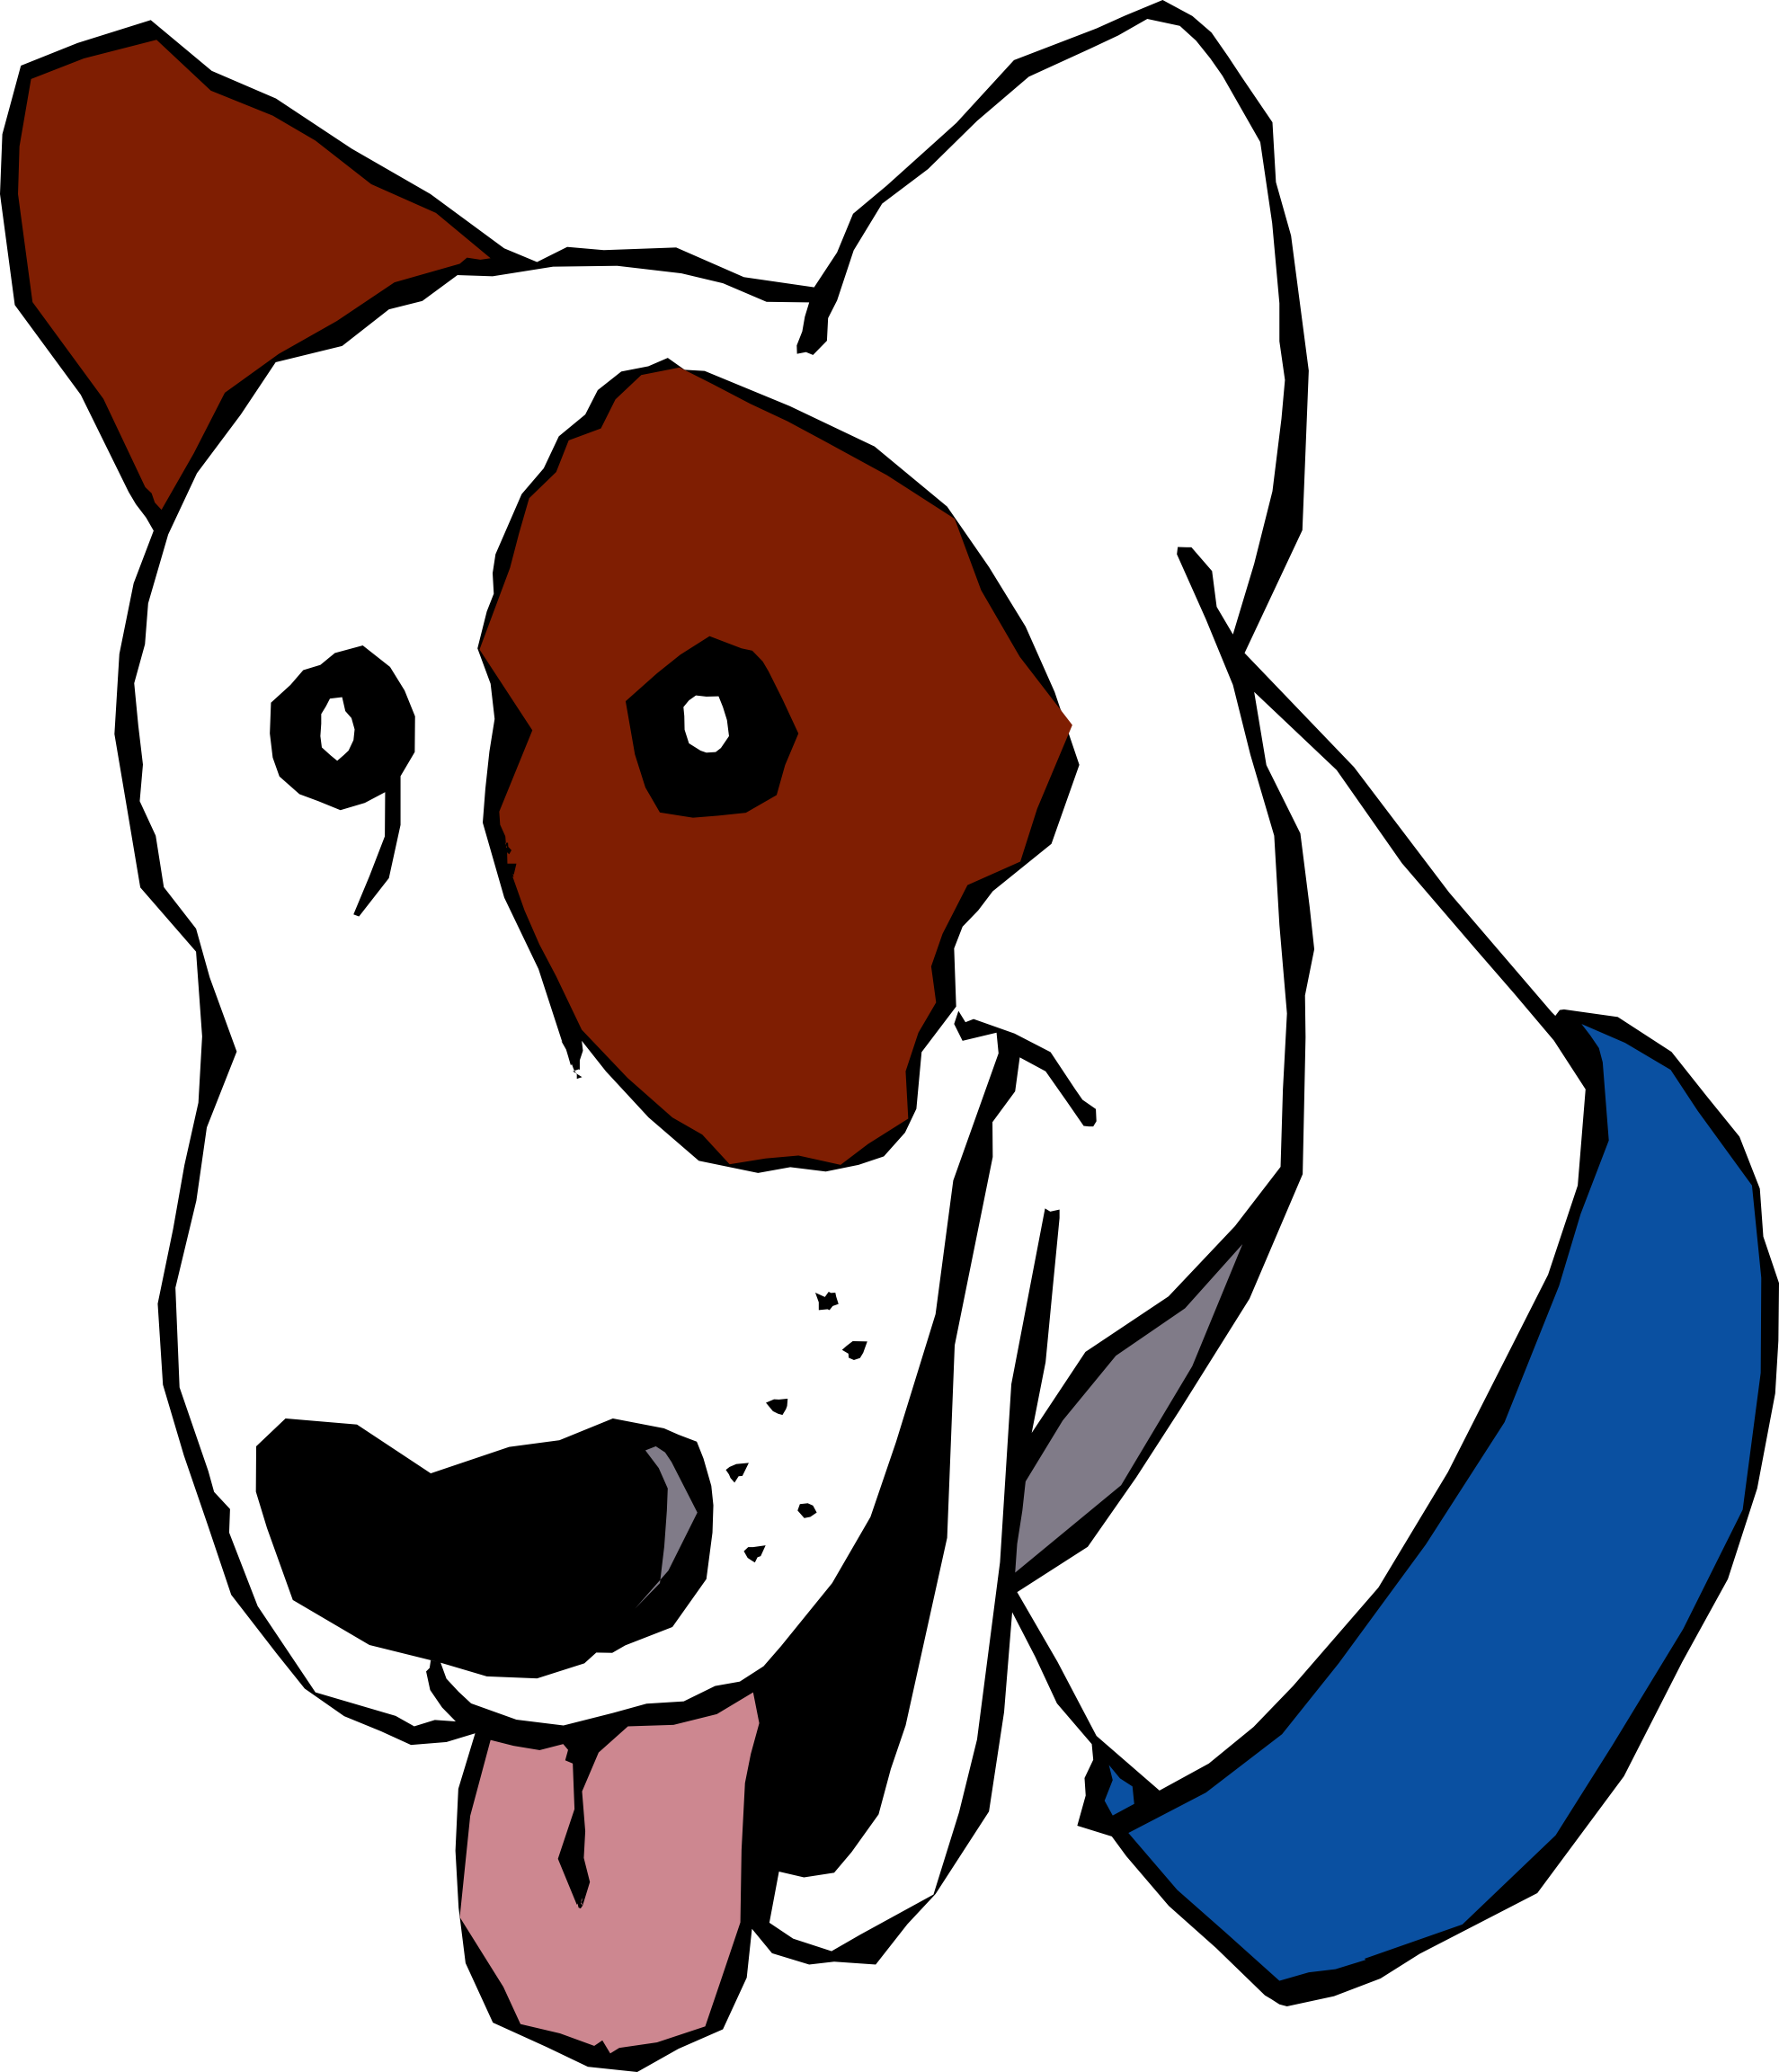 Dog picture clipart image transparent download Free Cartoon Pictures Of Dog, Download Free Clip Art, Free Clip Art ... image transparent download